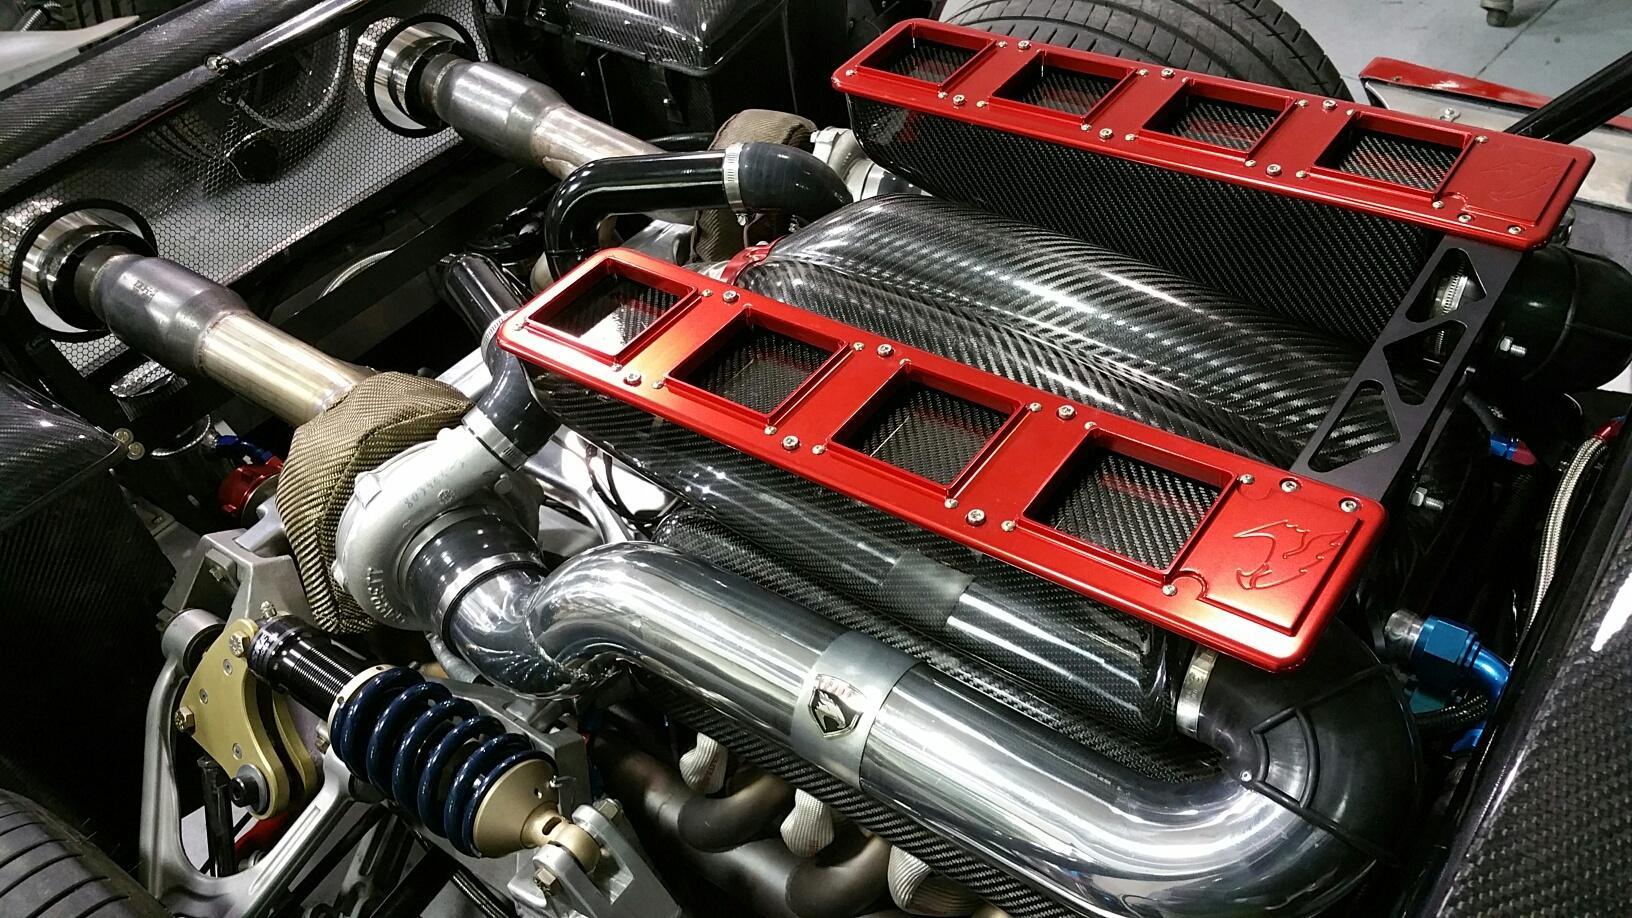 The Falcon F7 engine bay.